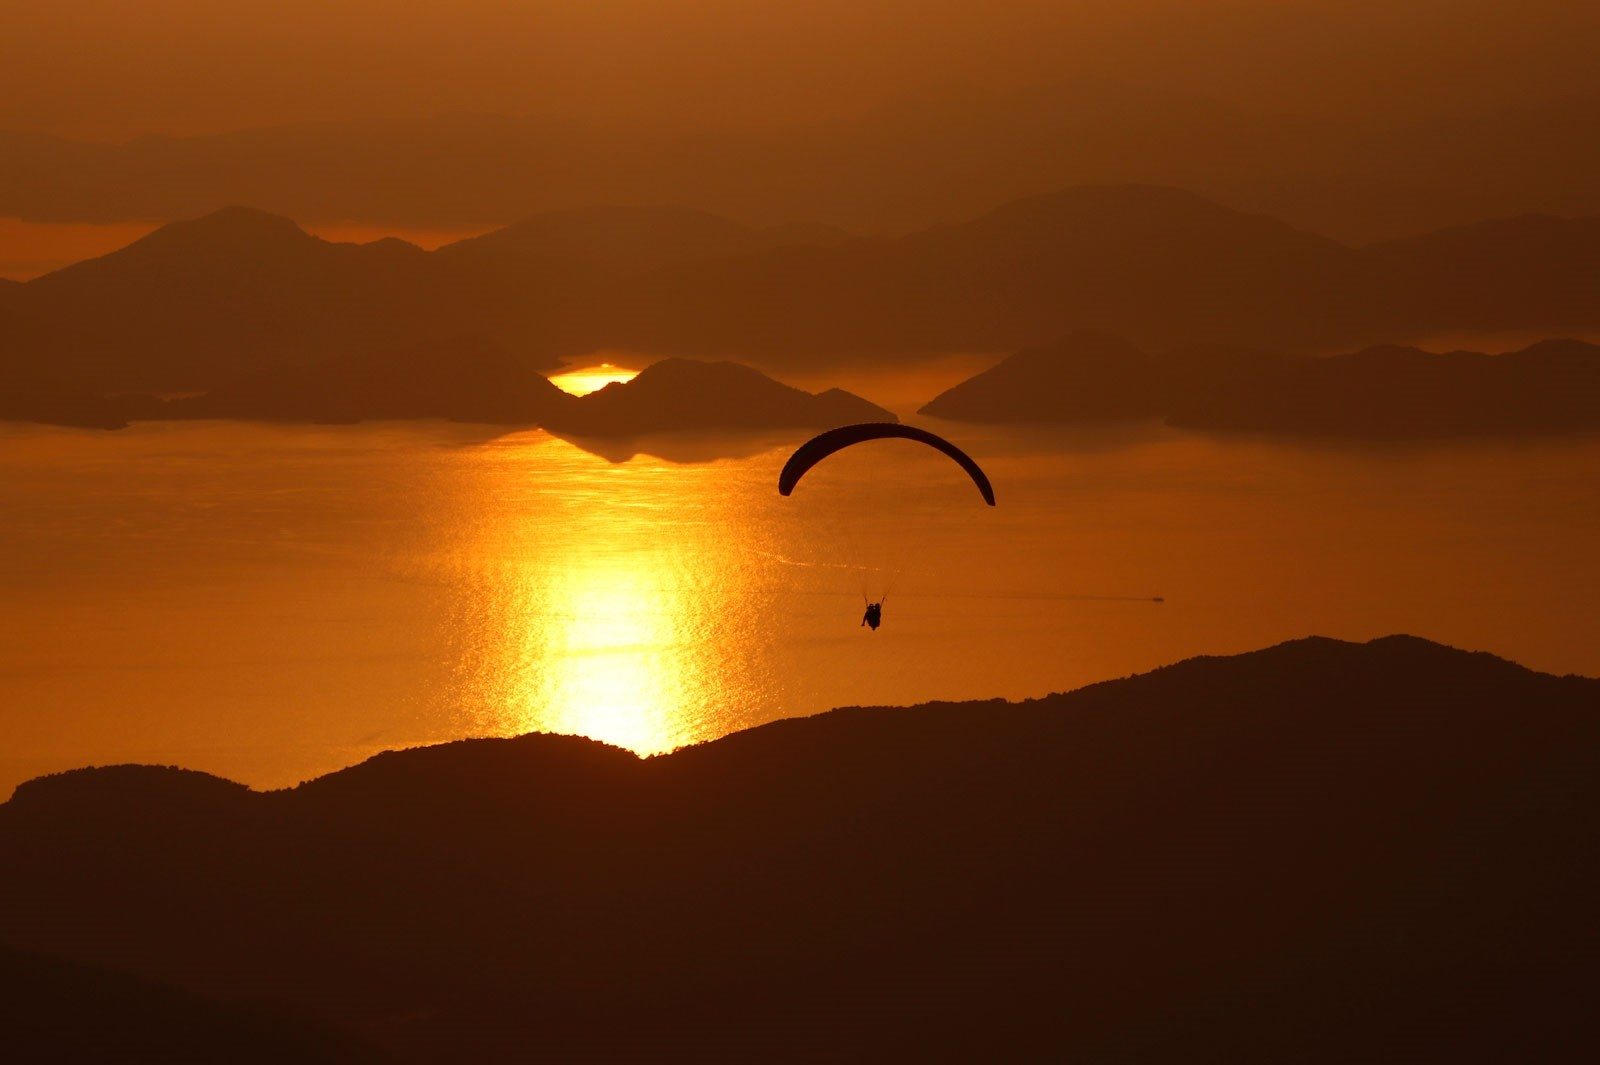 Sky's not the limit: Turkey's Fethiye one of world's best sites for paragliding